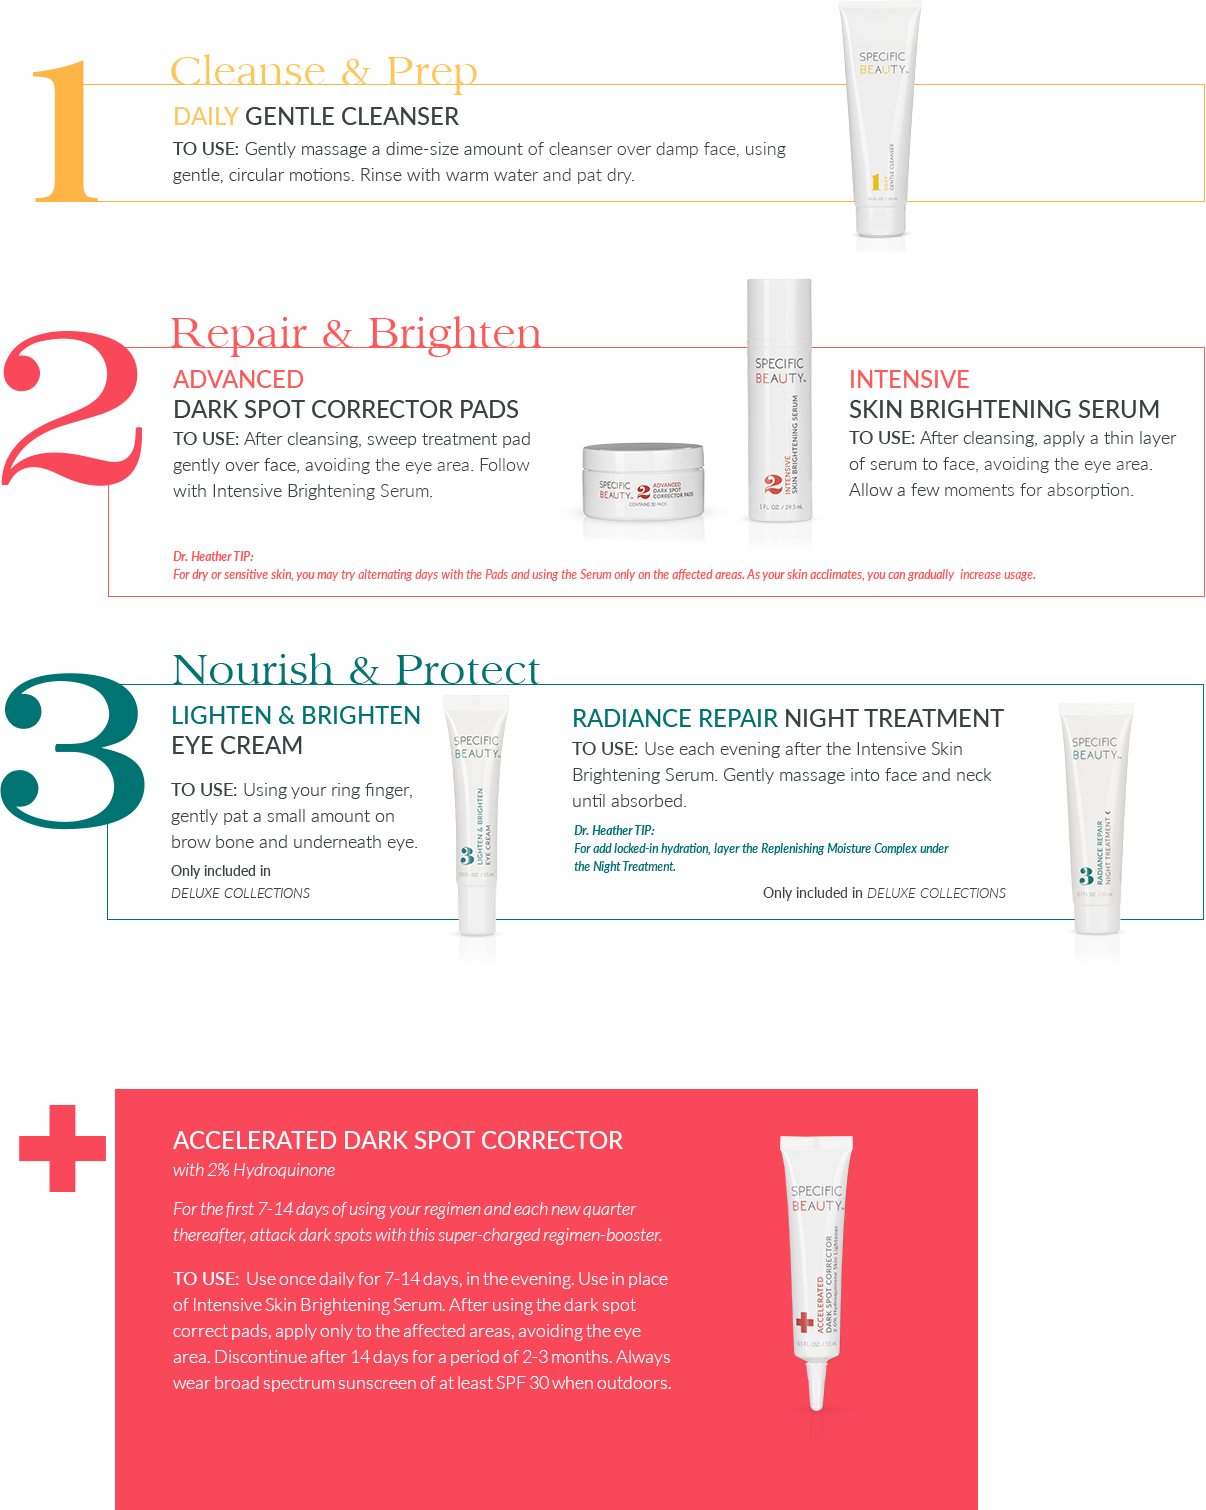 Cleanse & Prep with Daily Gentle Cleanser; Repair & Brighten with Advanced Dark Spot Corrector Pads and Intensive Skin Brightening Serum; Nourish & Protect with Lighten & Brighten Eye Cream and Radiance Repair Night Treatment; Boost & Enhance with Advanced Dark Spot Corrector